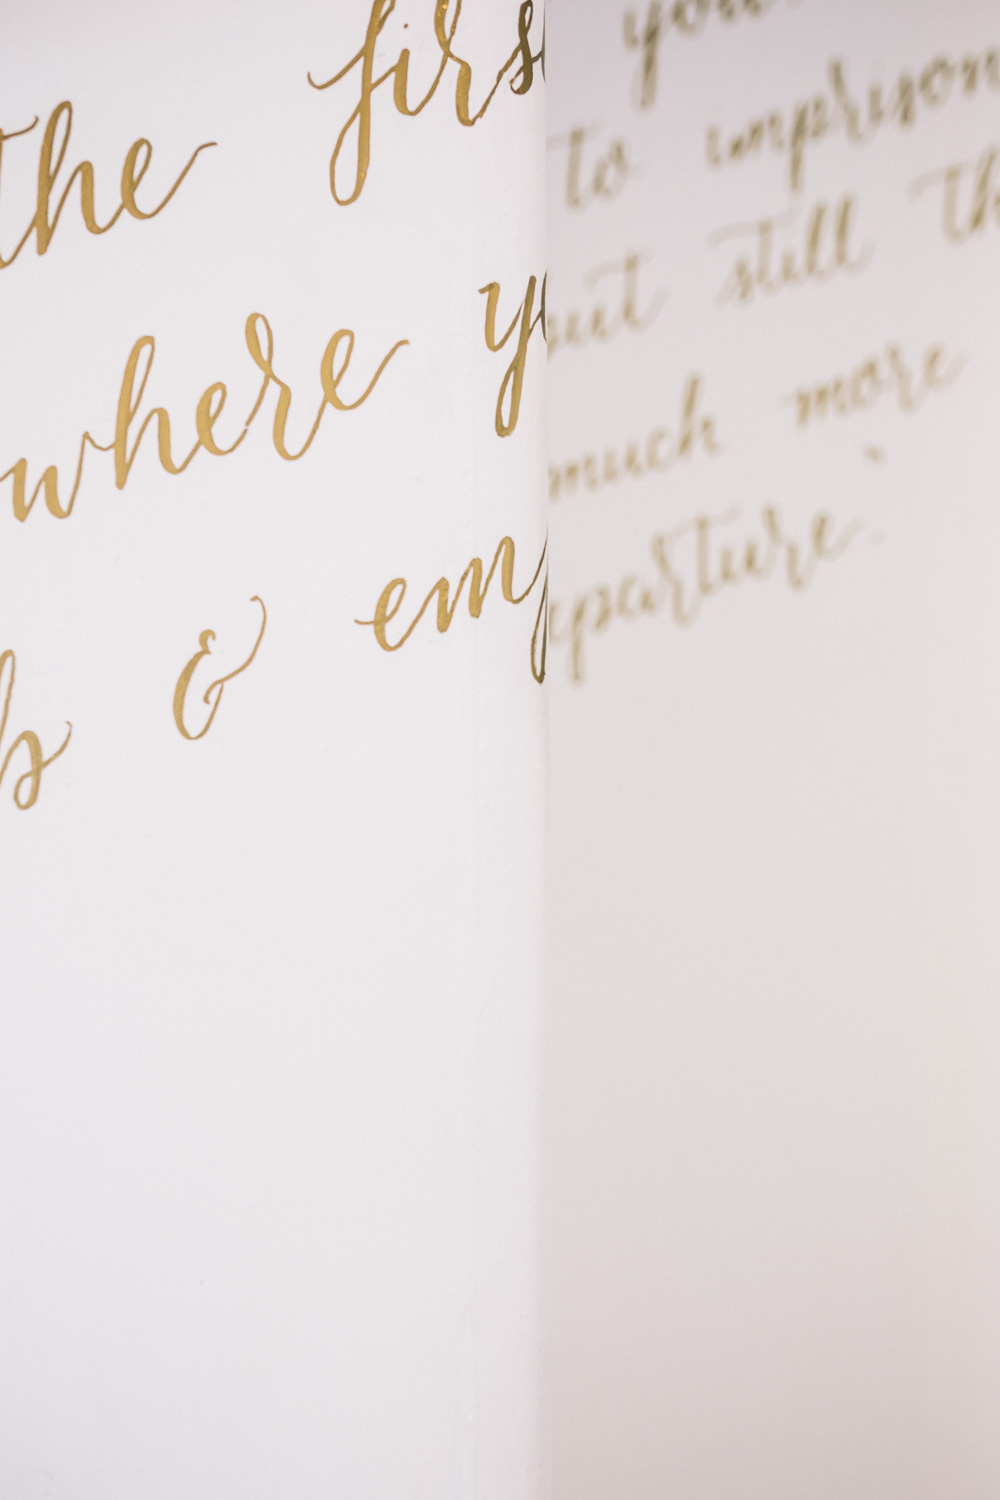 Beautiful hand lettering by Vanessa Hodge from Ink & Dust Designs